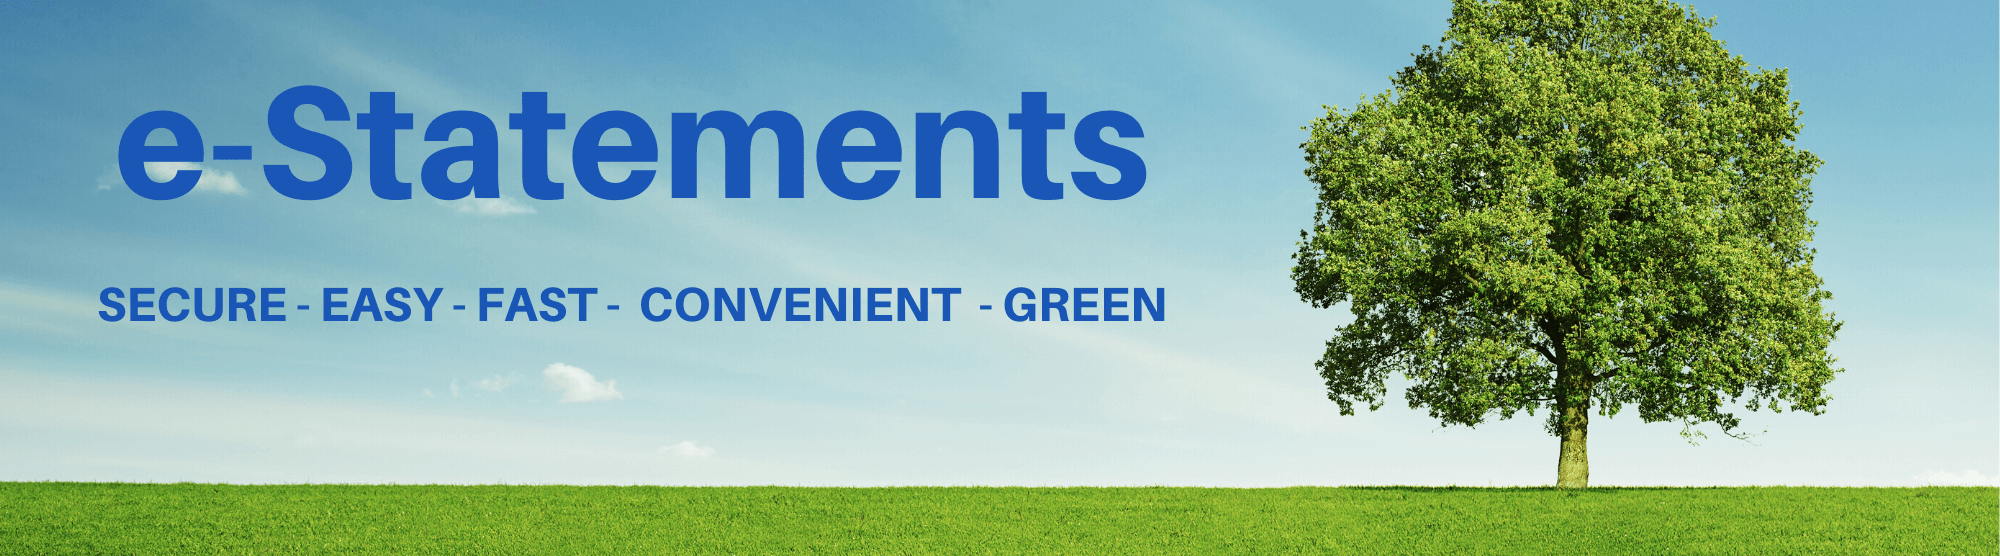 eStatements. secure, easy, fast, convenient, green.